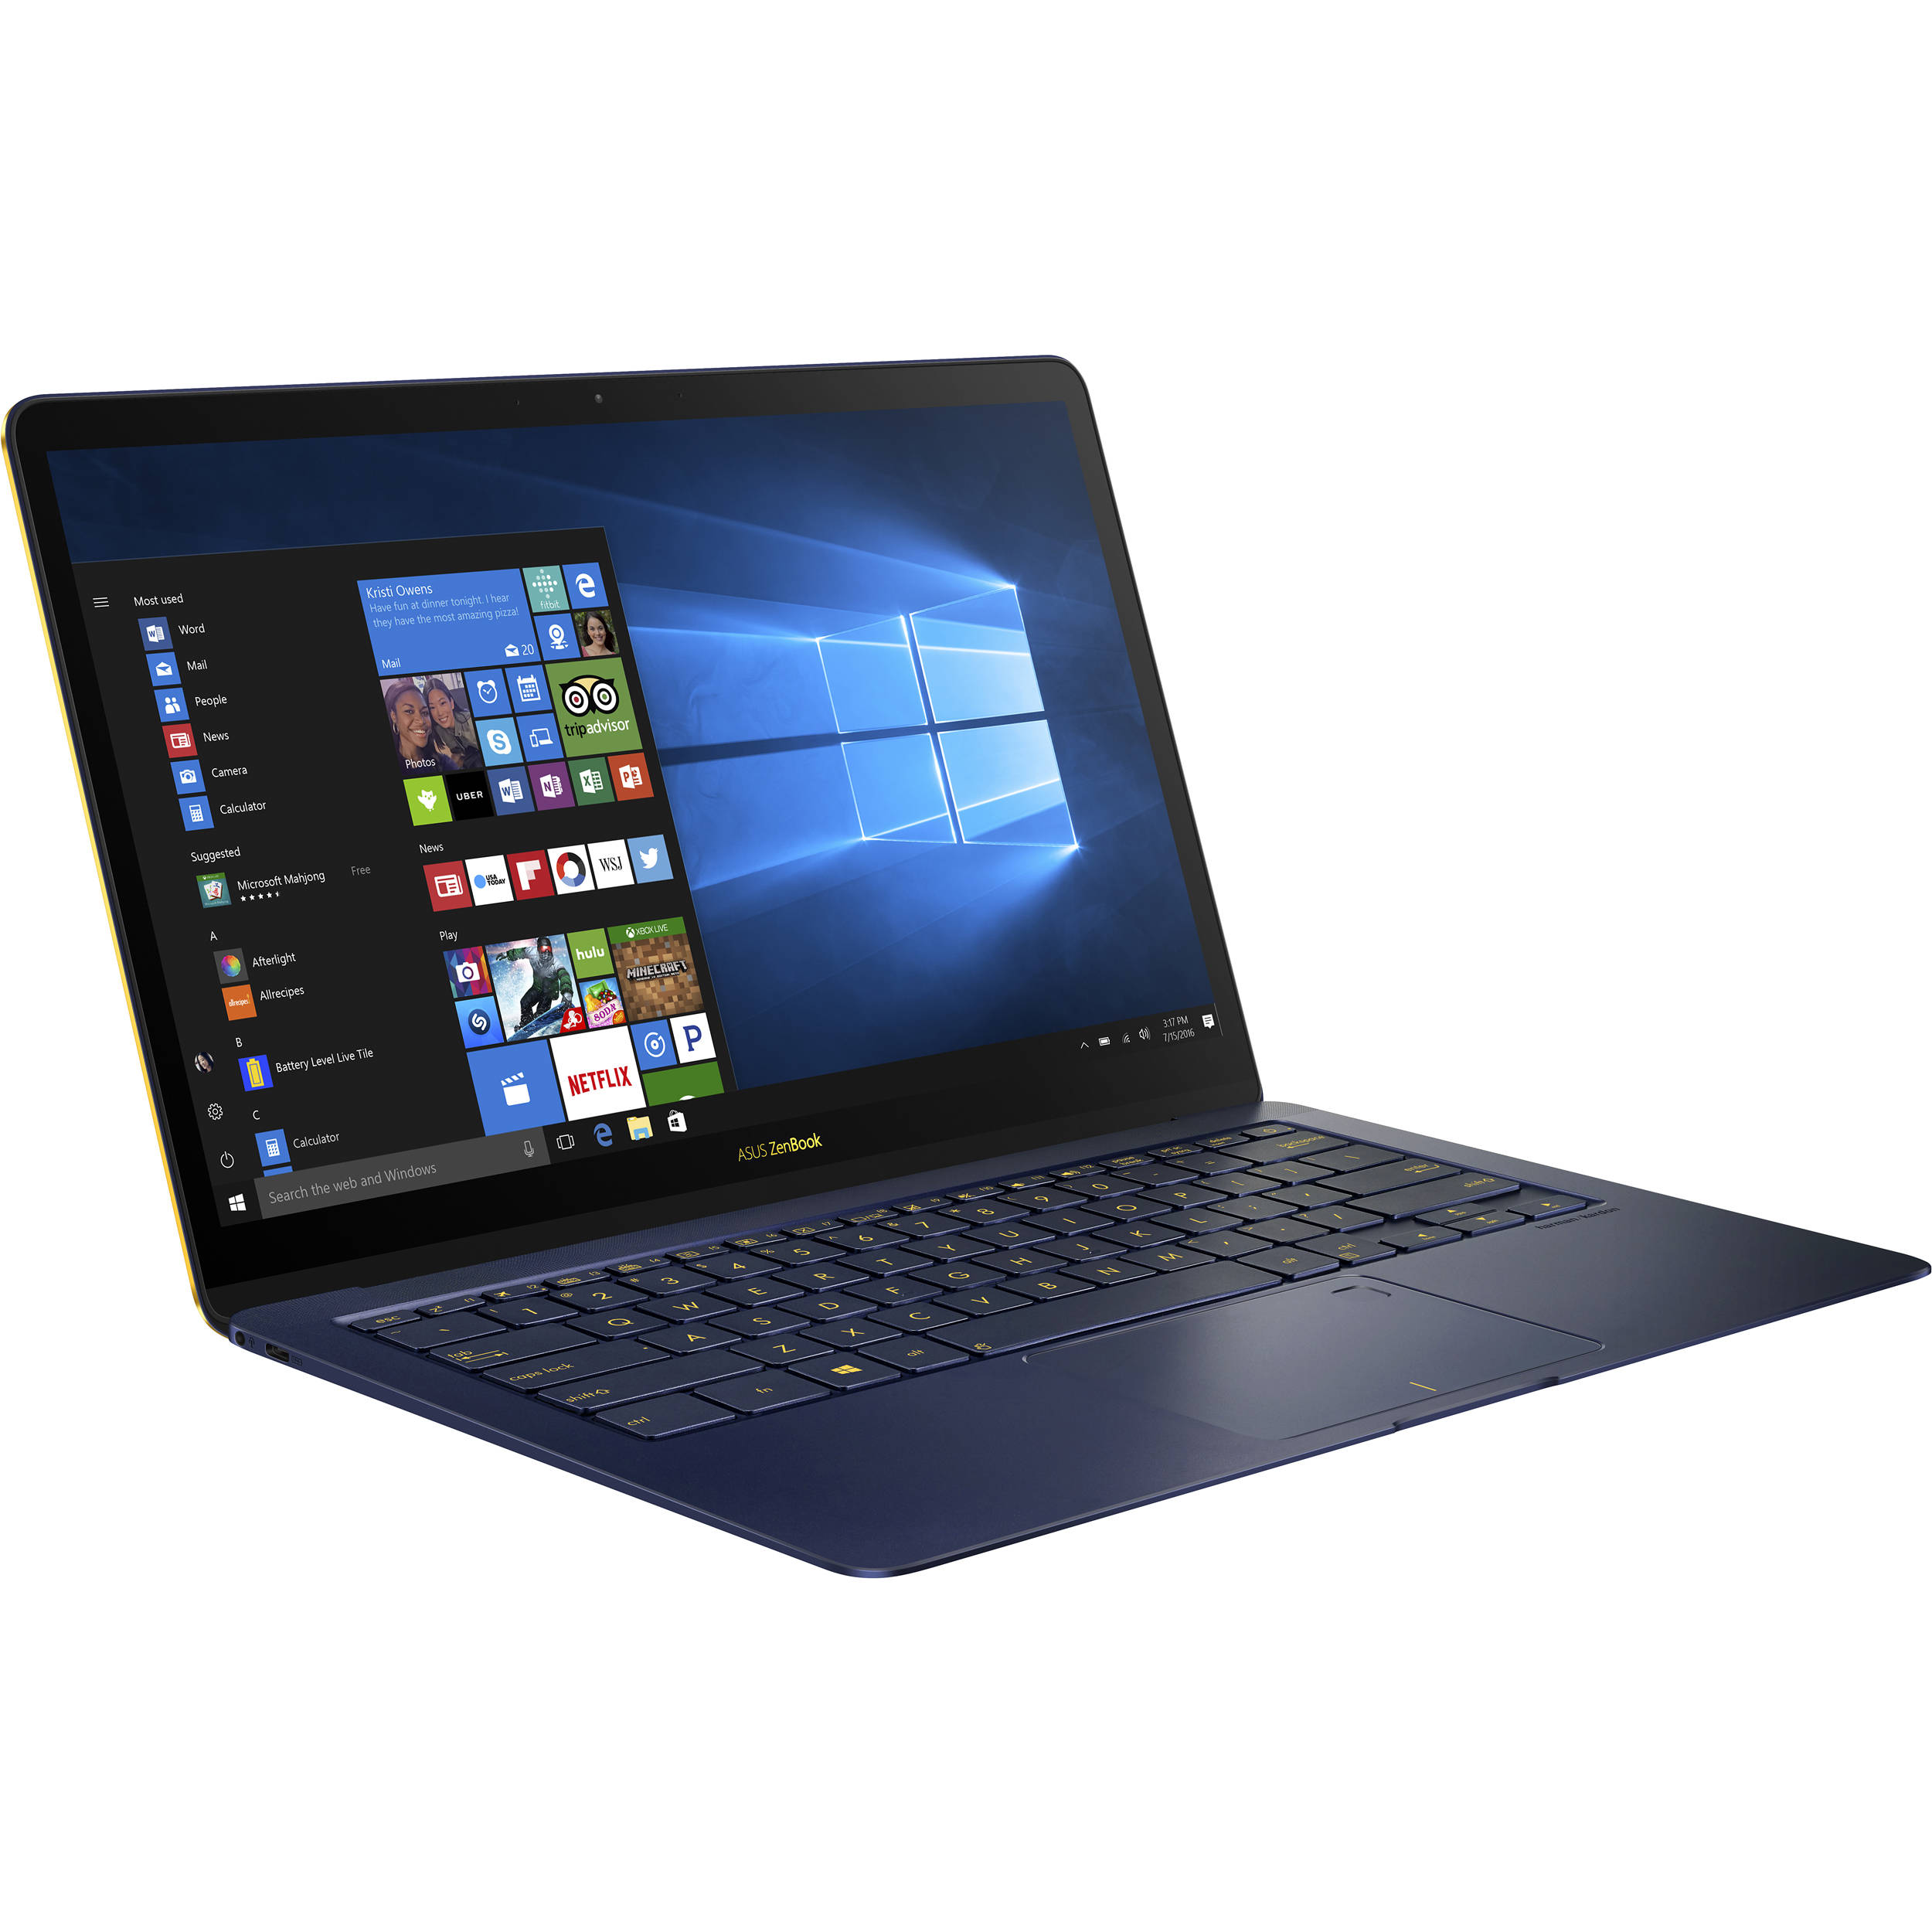 Asus ZenBook 3 Boot from USB to install Windows or Linux